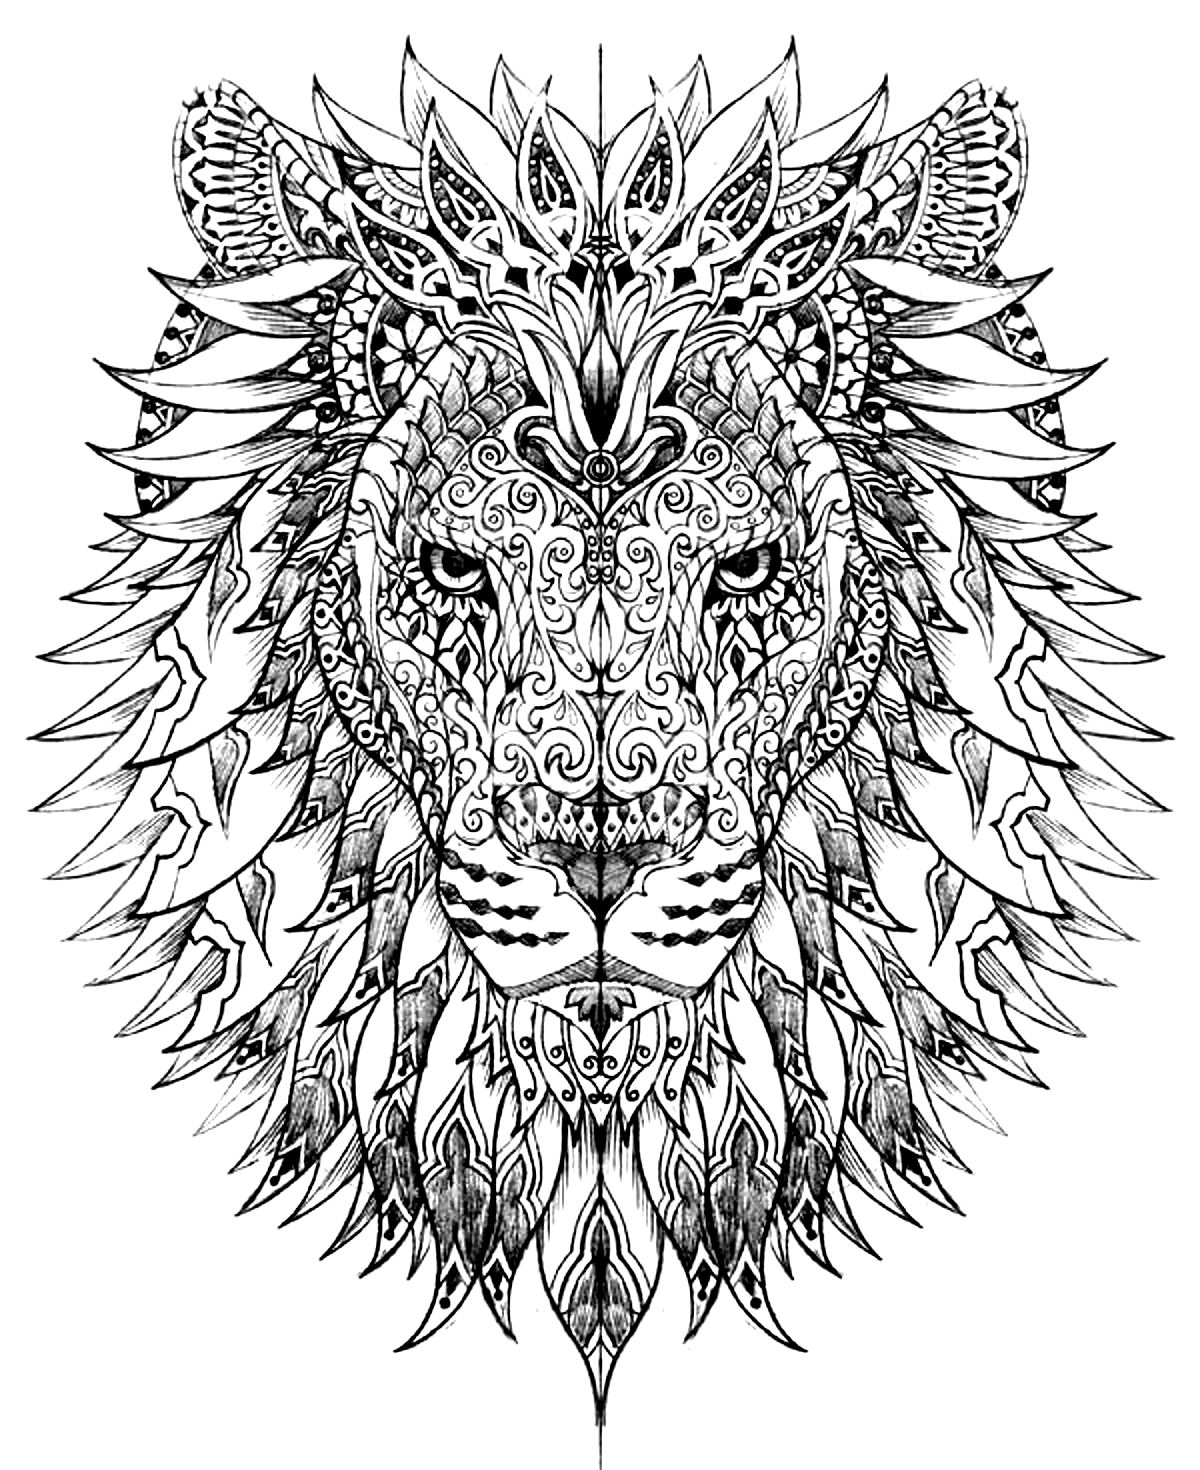 colouring images of lion cartoon lion coloring page free printable coloring pages lion images of colouring